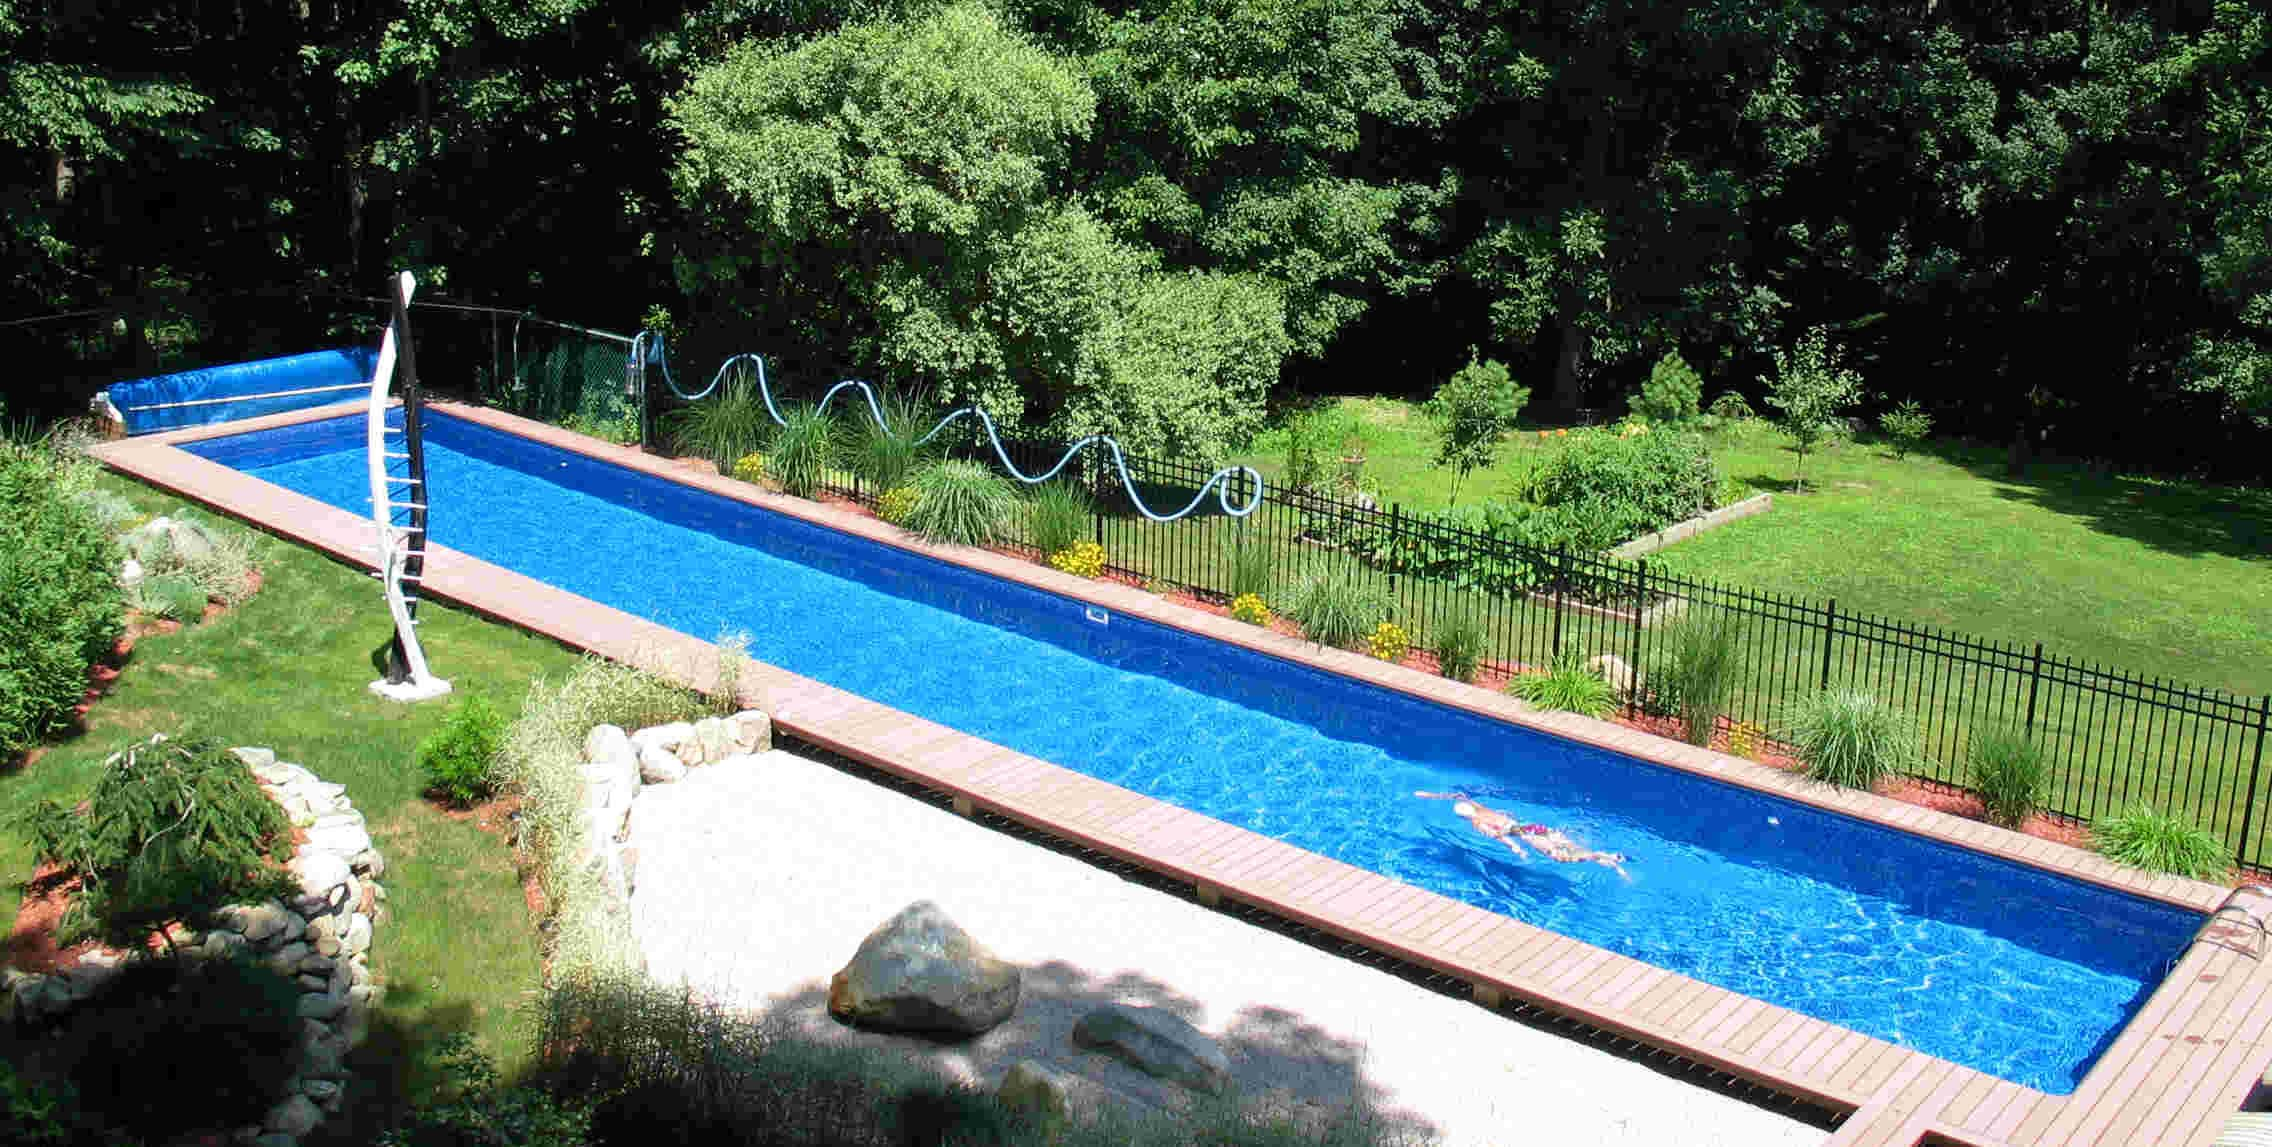 Diy inground swimming pool backyard design ideas for Underground swimming pool designs